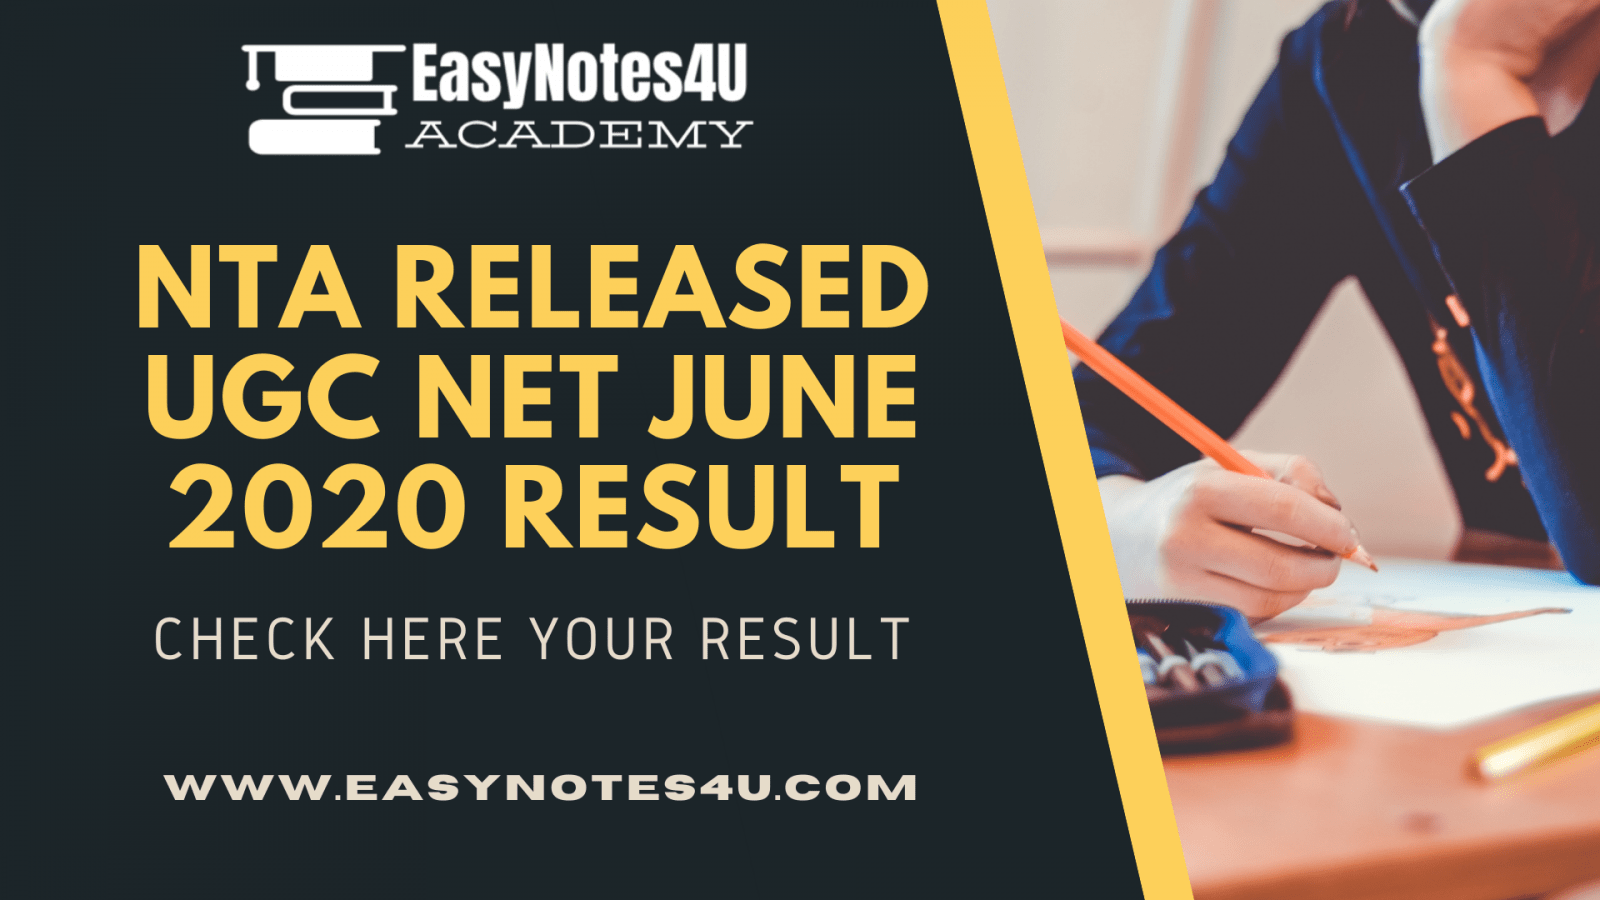 UGC NET June 2020 Result Released by NTA, check here